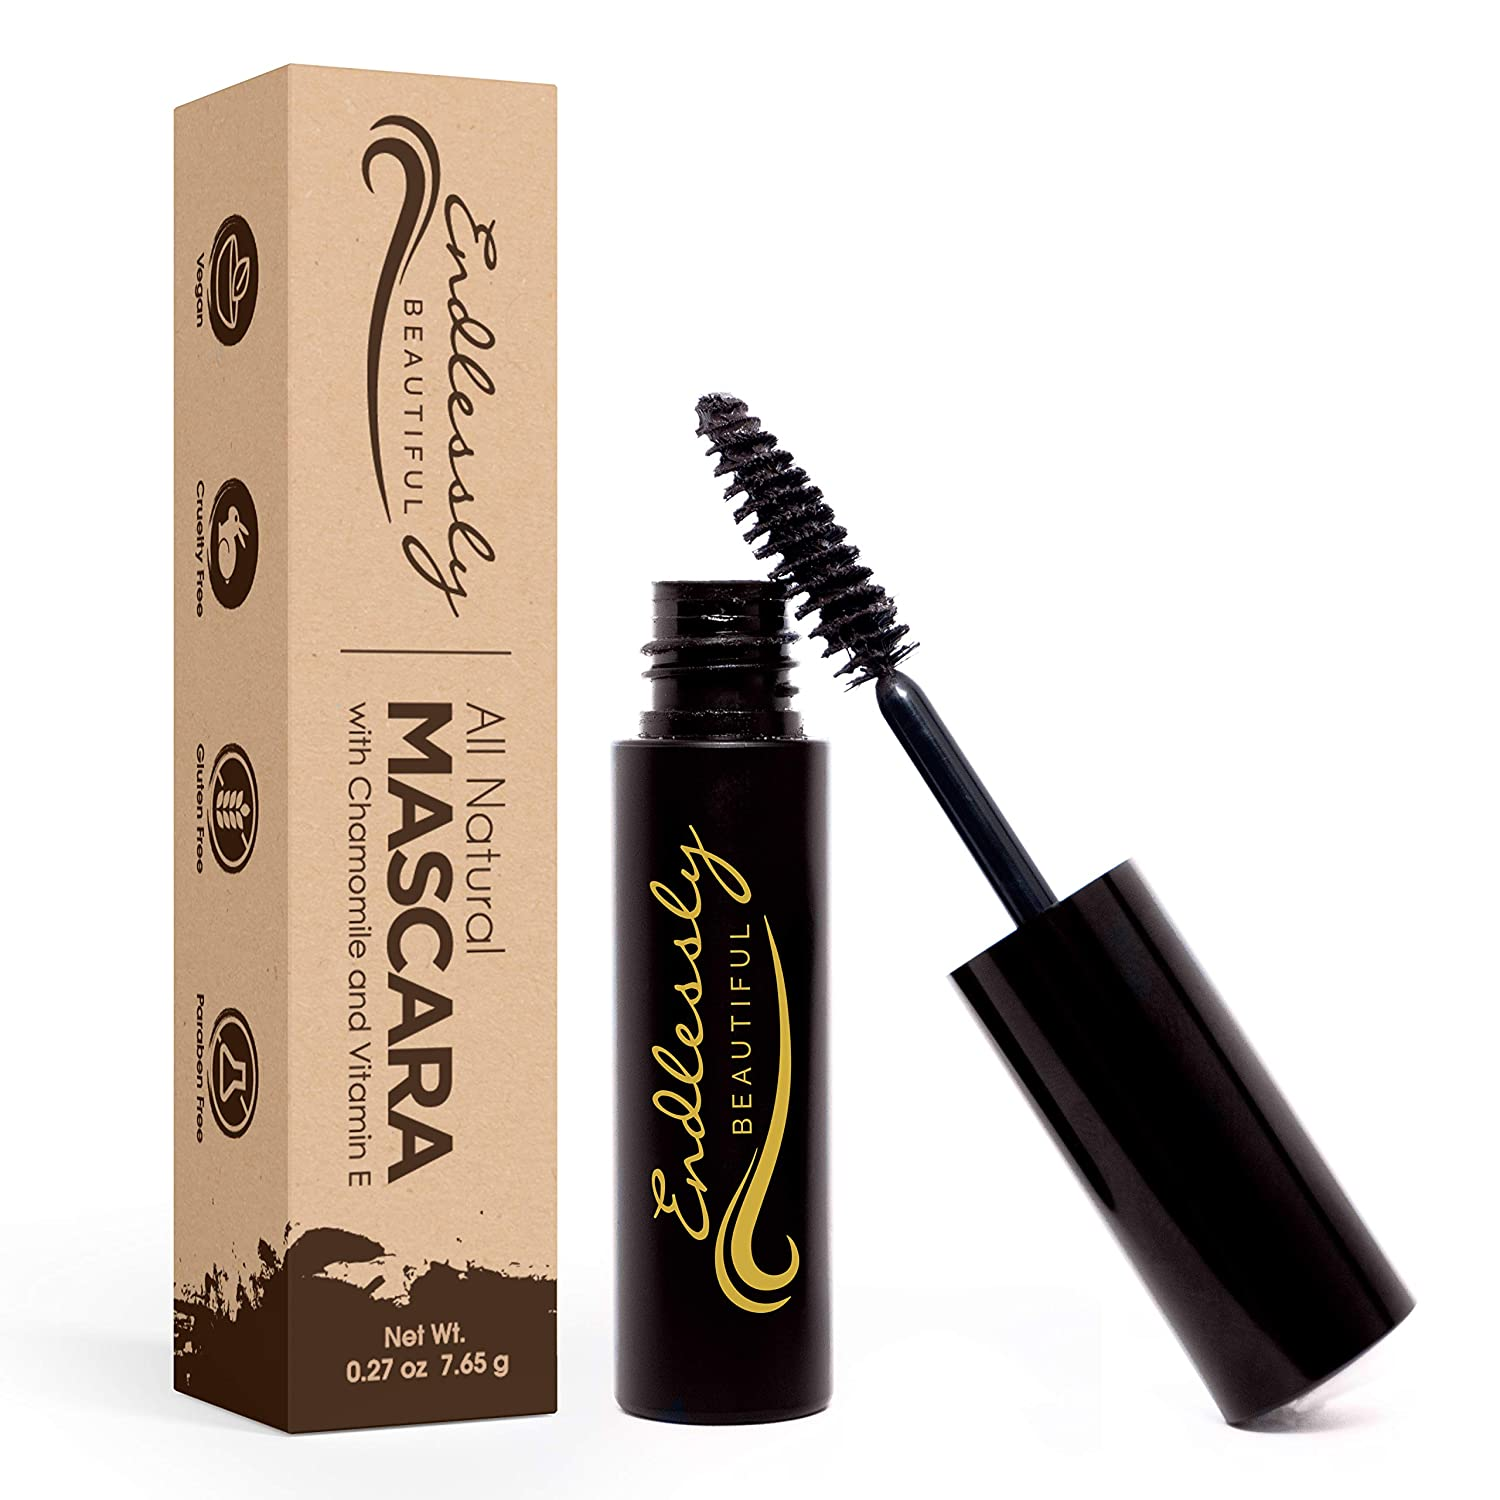 Organic Mascara | Brown Mascara | Vegan & Cruelty Free | Best Natural Mascara for Thickening and Lengthening | Best Gluten Free Eyelash Organic Make ...